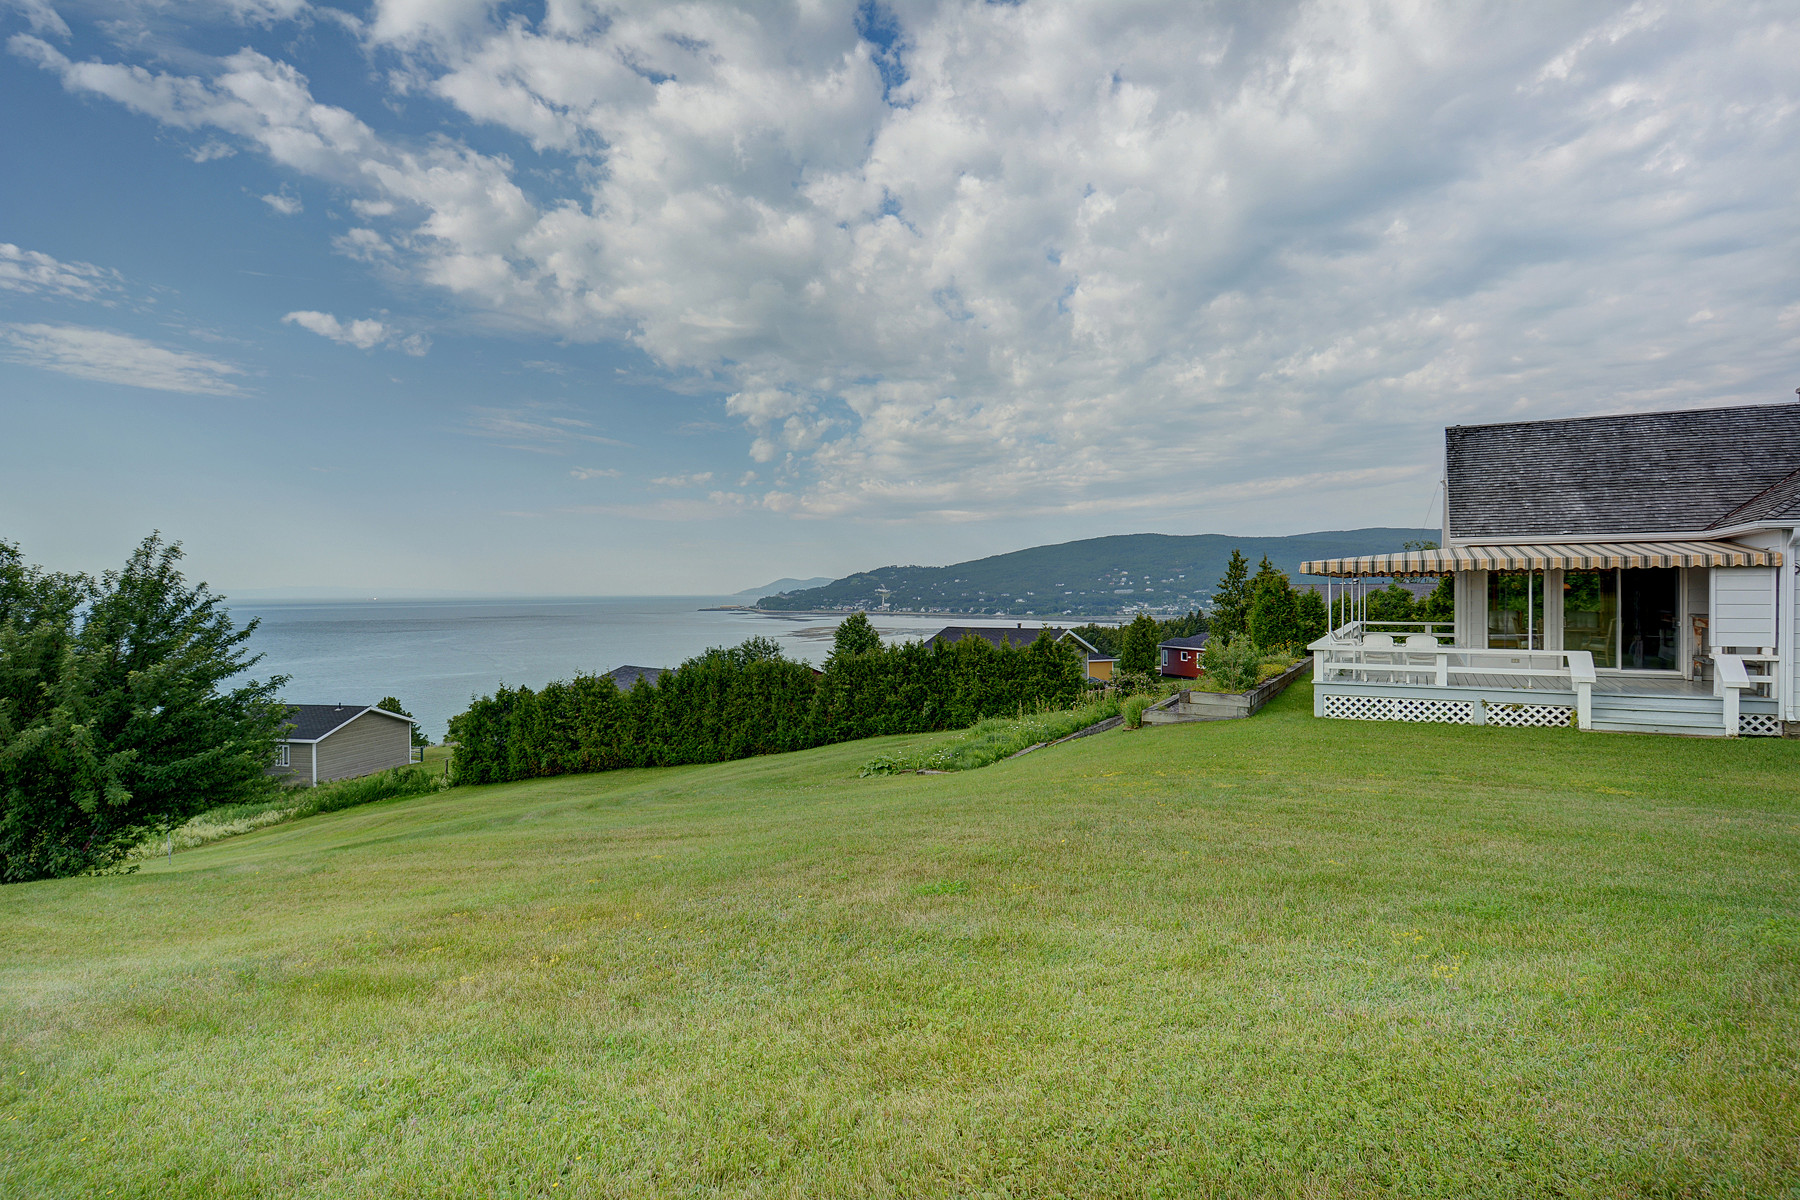 Single Family Home for Sale at La Malbaie, Capitale-Nationale 42 Rue St-Raphaël La Malbaie, Quebec, G5A2N5 Canada